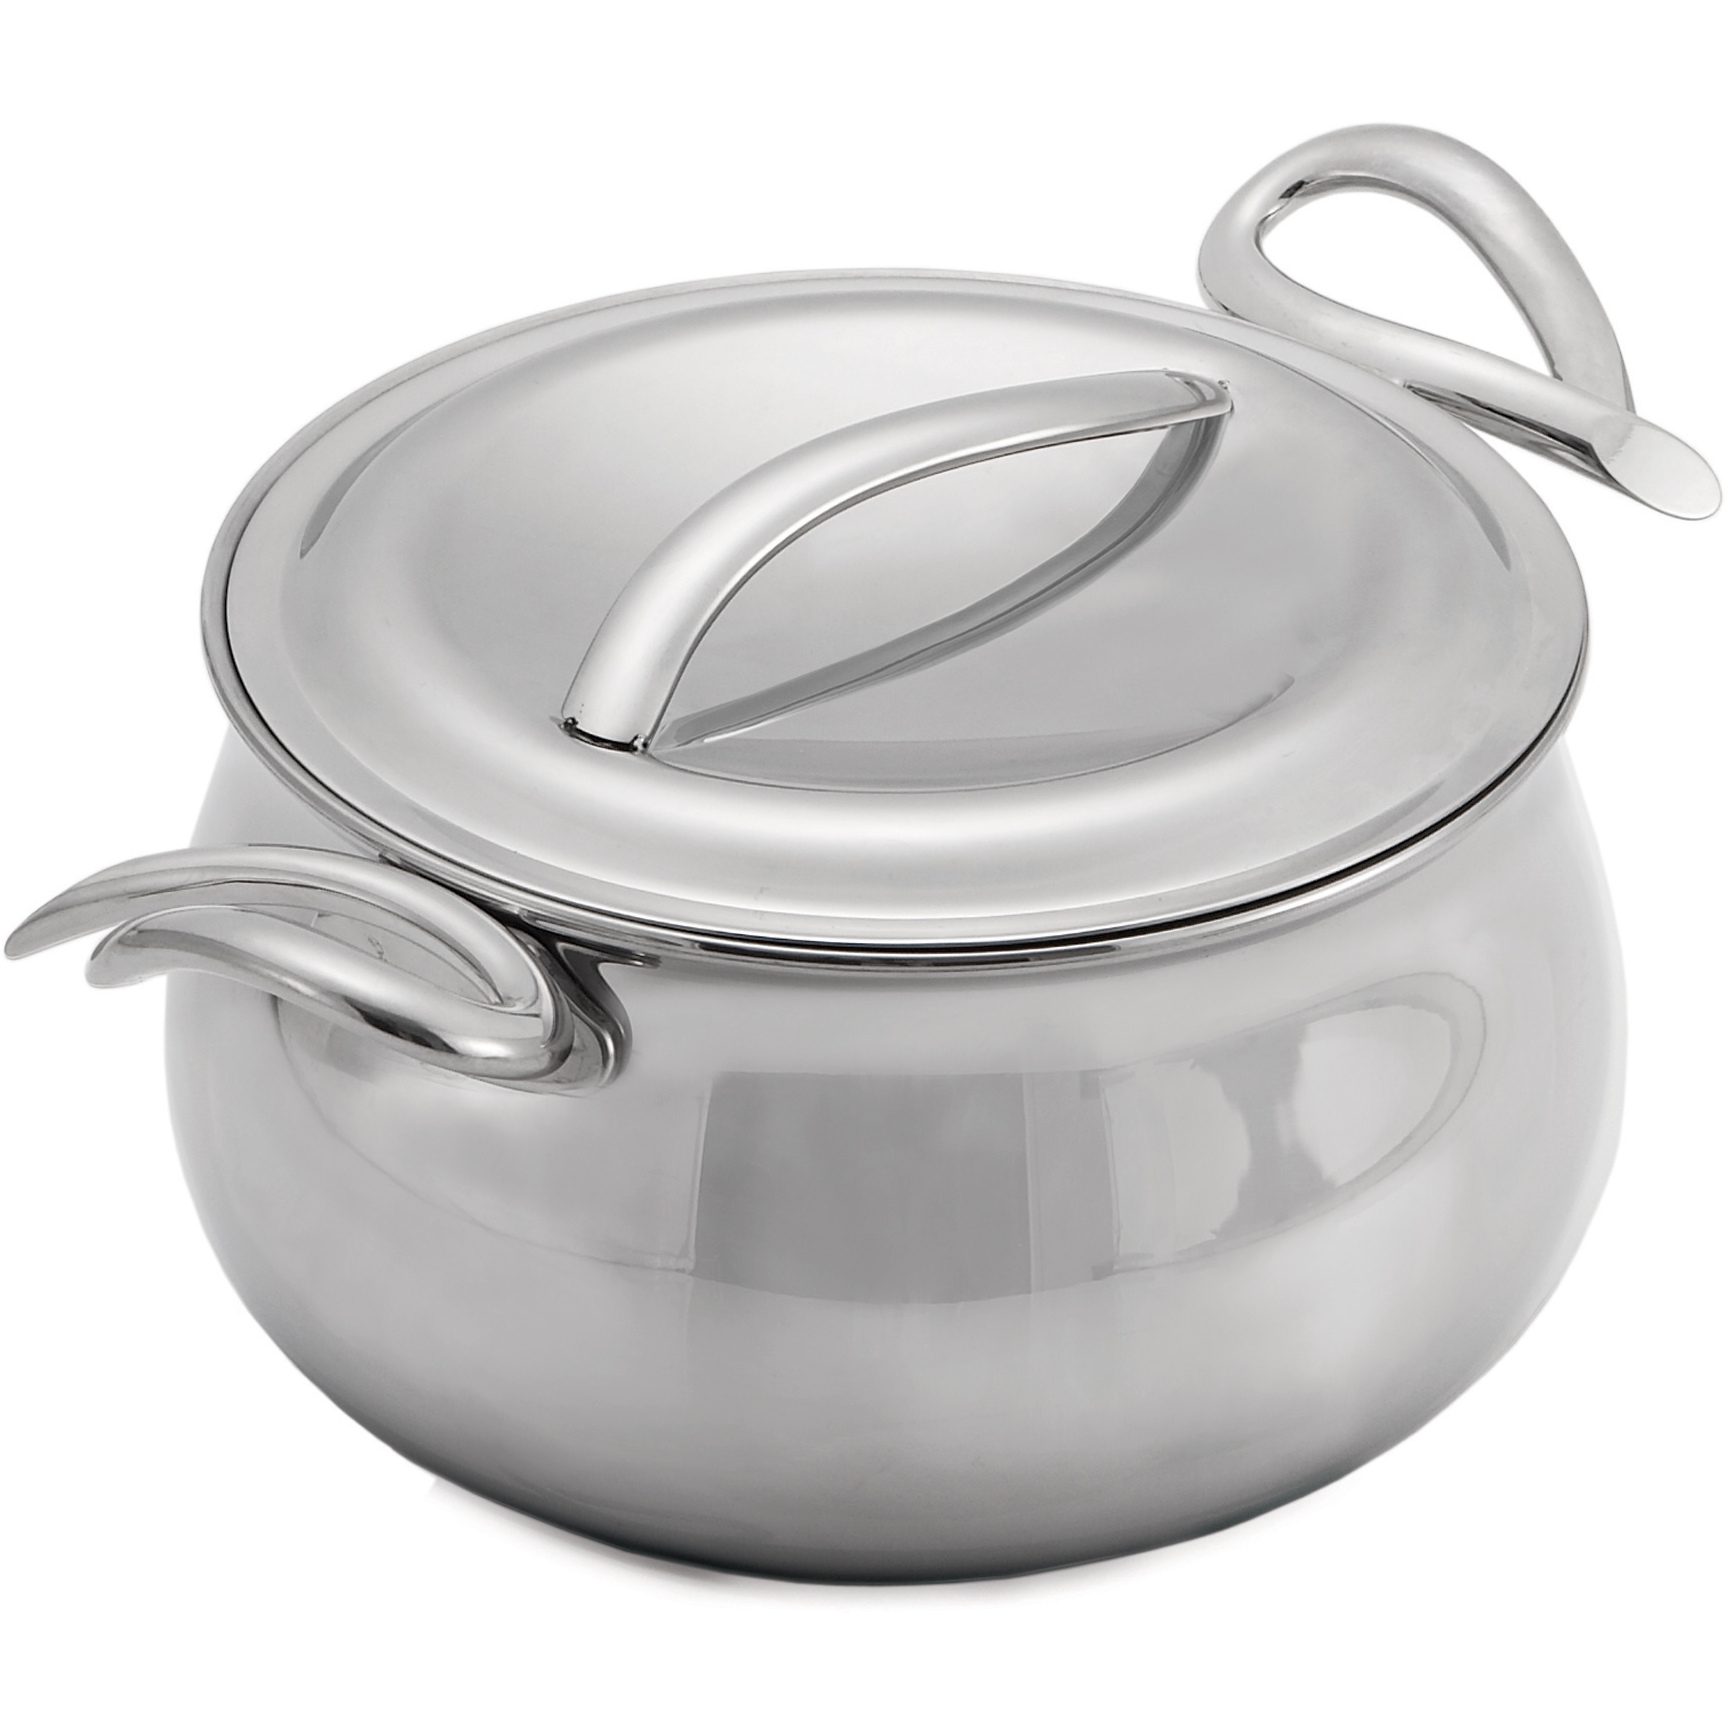 Nambe CookServ Stainless Steel Sauce Pan with Lid, 3 Quart